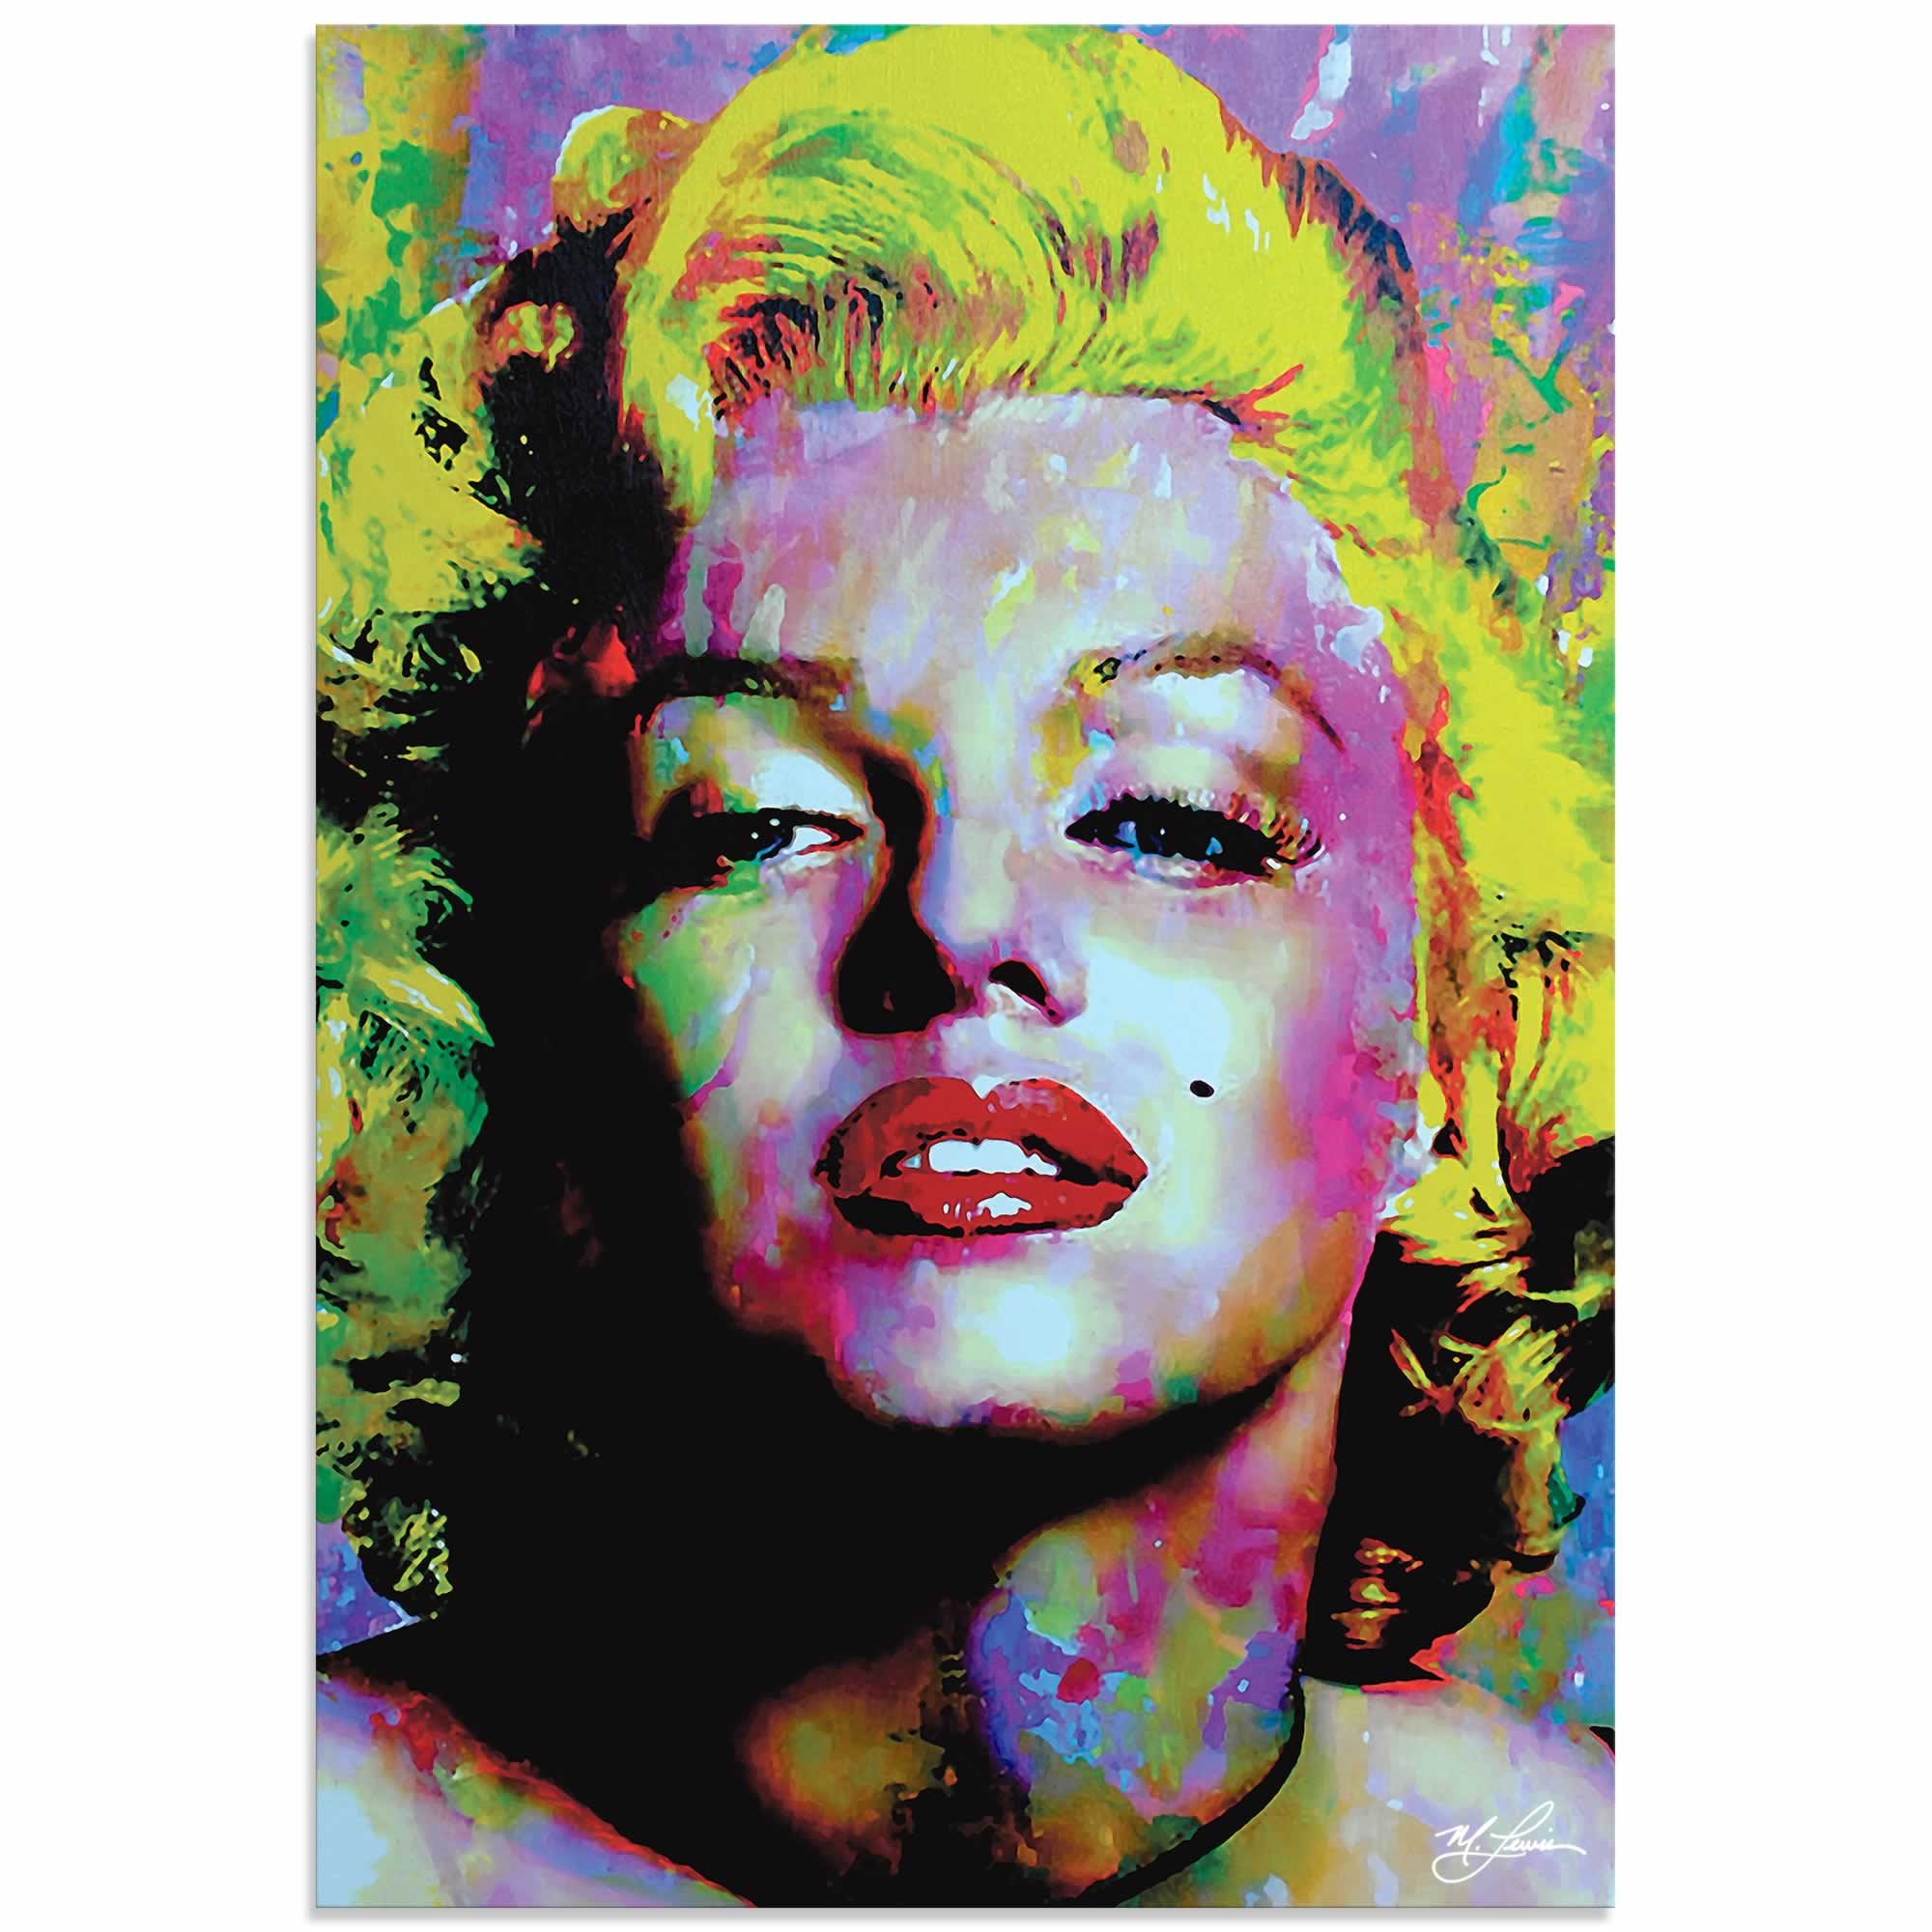 Marilyn Monroe Relinquished Beauty | Pop Art Painting by Mark Lewis, Signed & Numbered Limited Edition